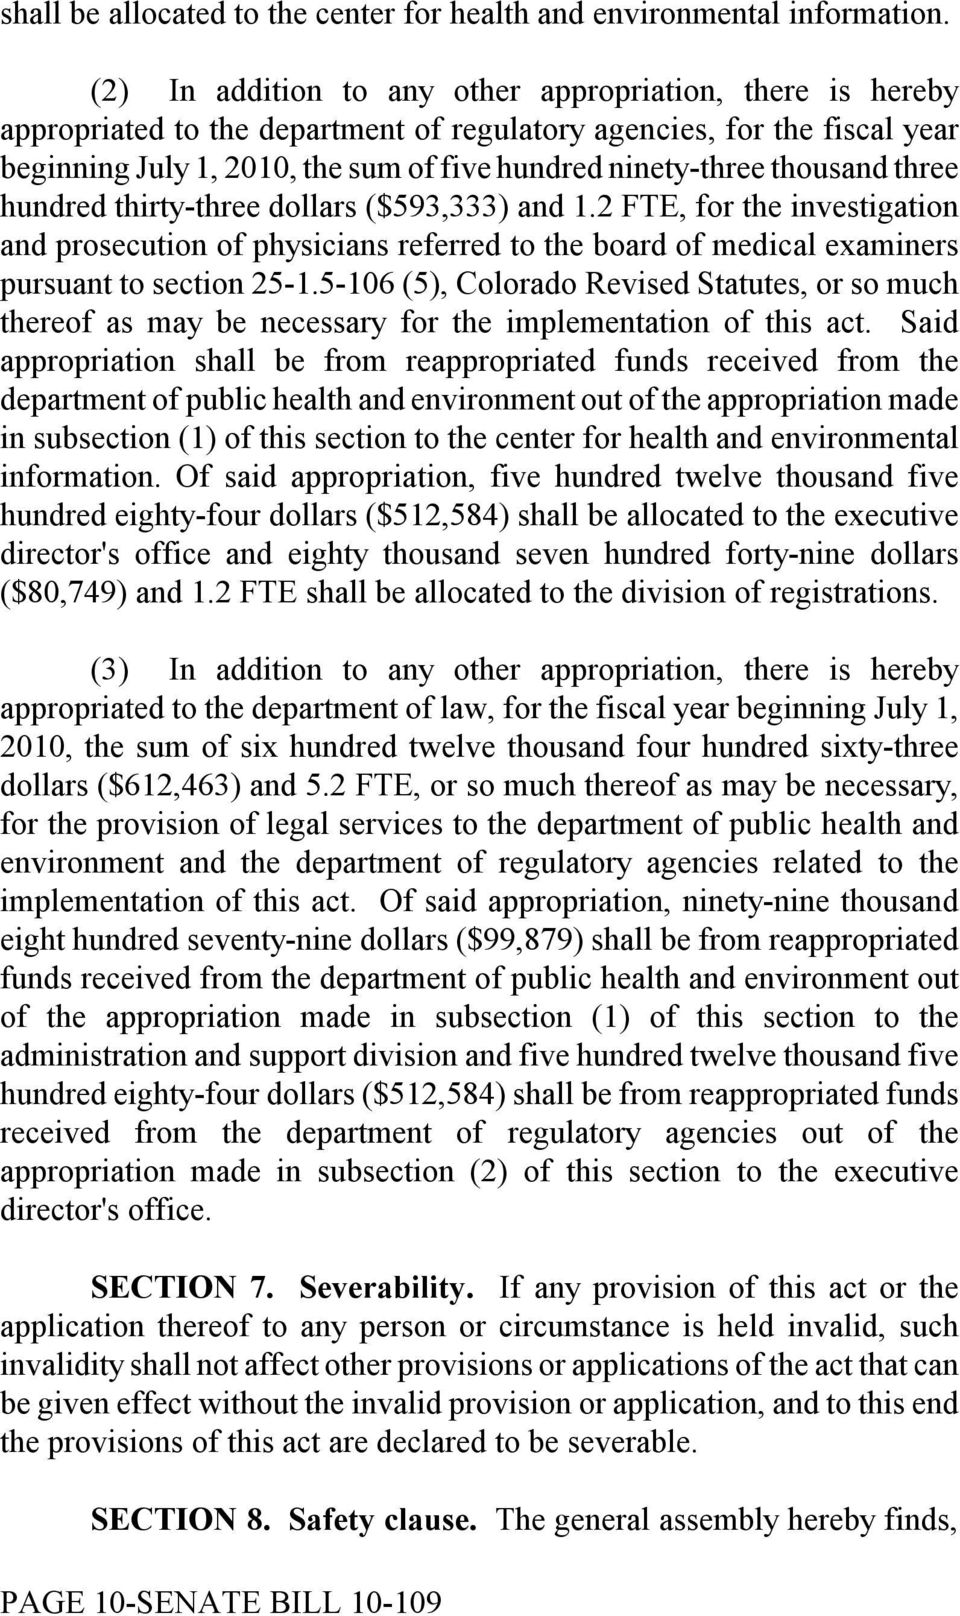 thousand three hundred thirty-three dollars ($593,333) and 1.2 FTE, for the investigation and prosecution of physicians referred to the board of medical examiners pursuant to section 25-1.